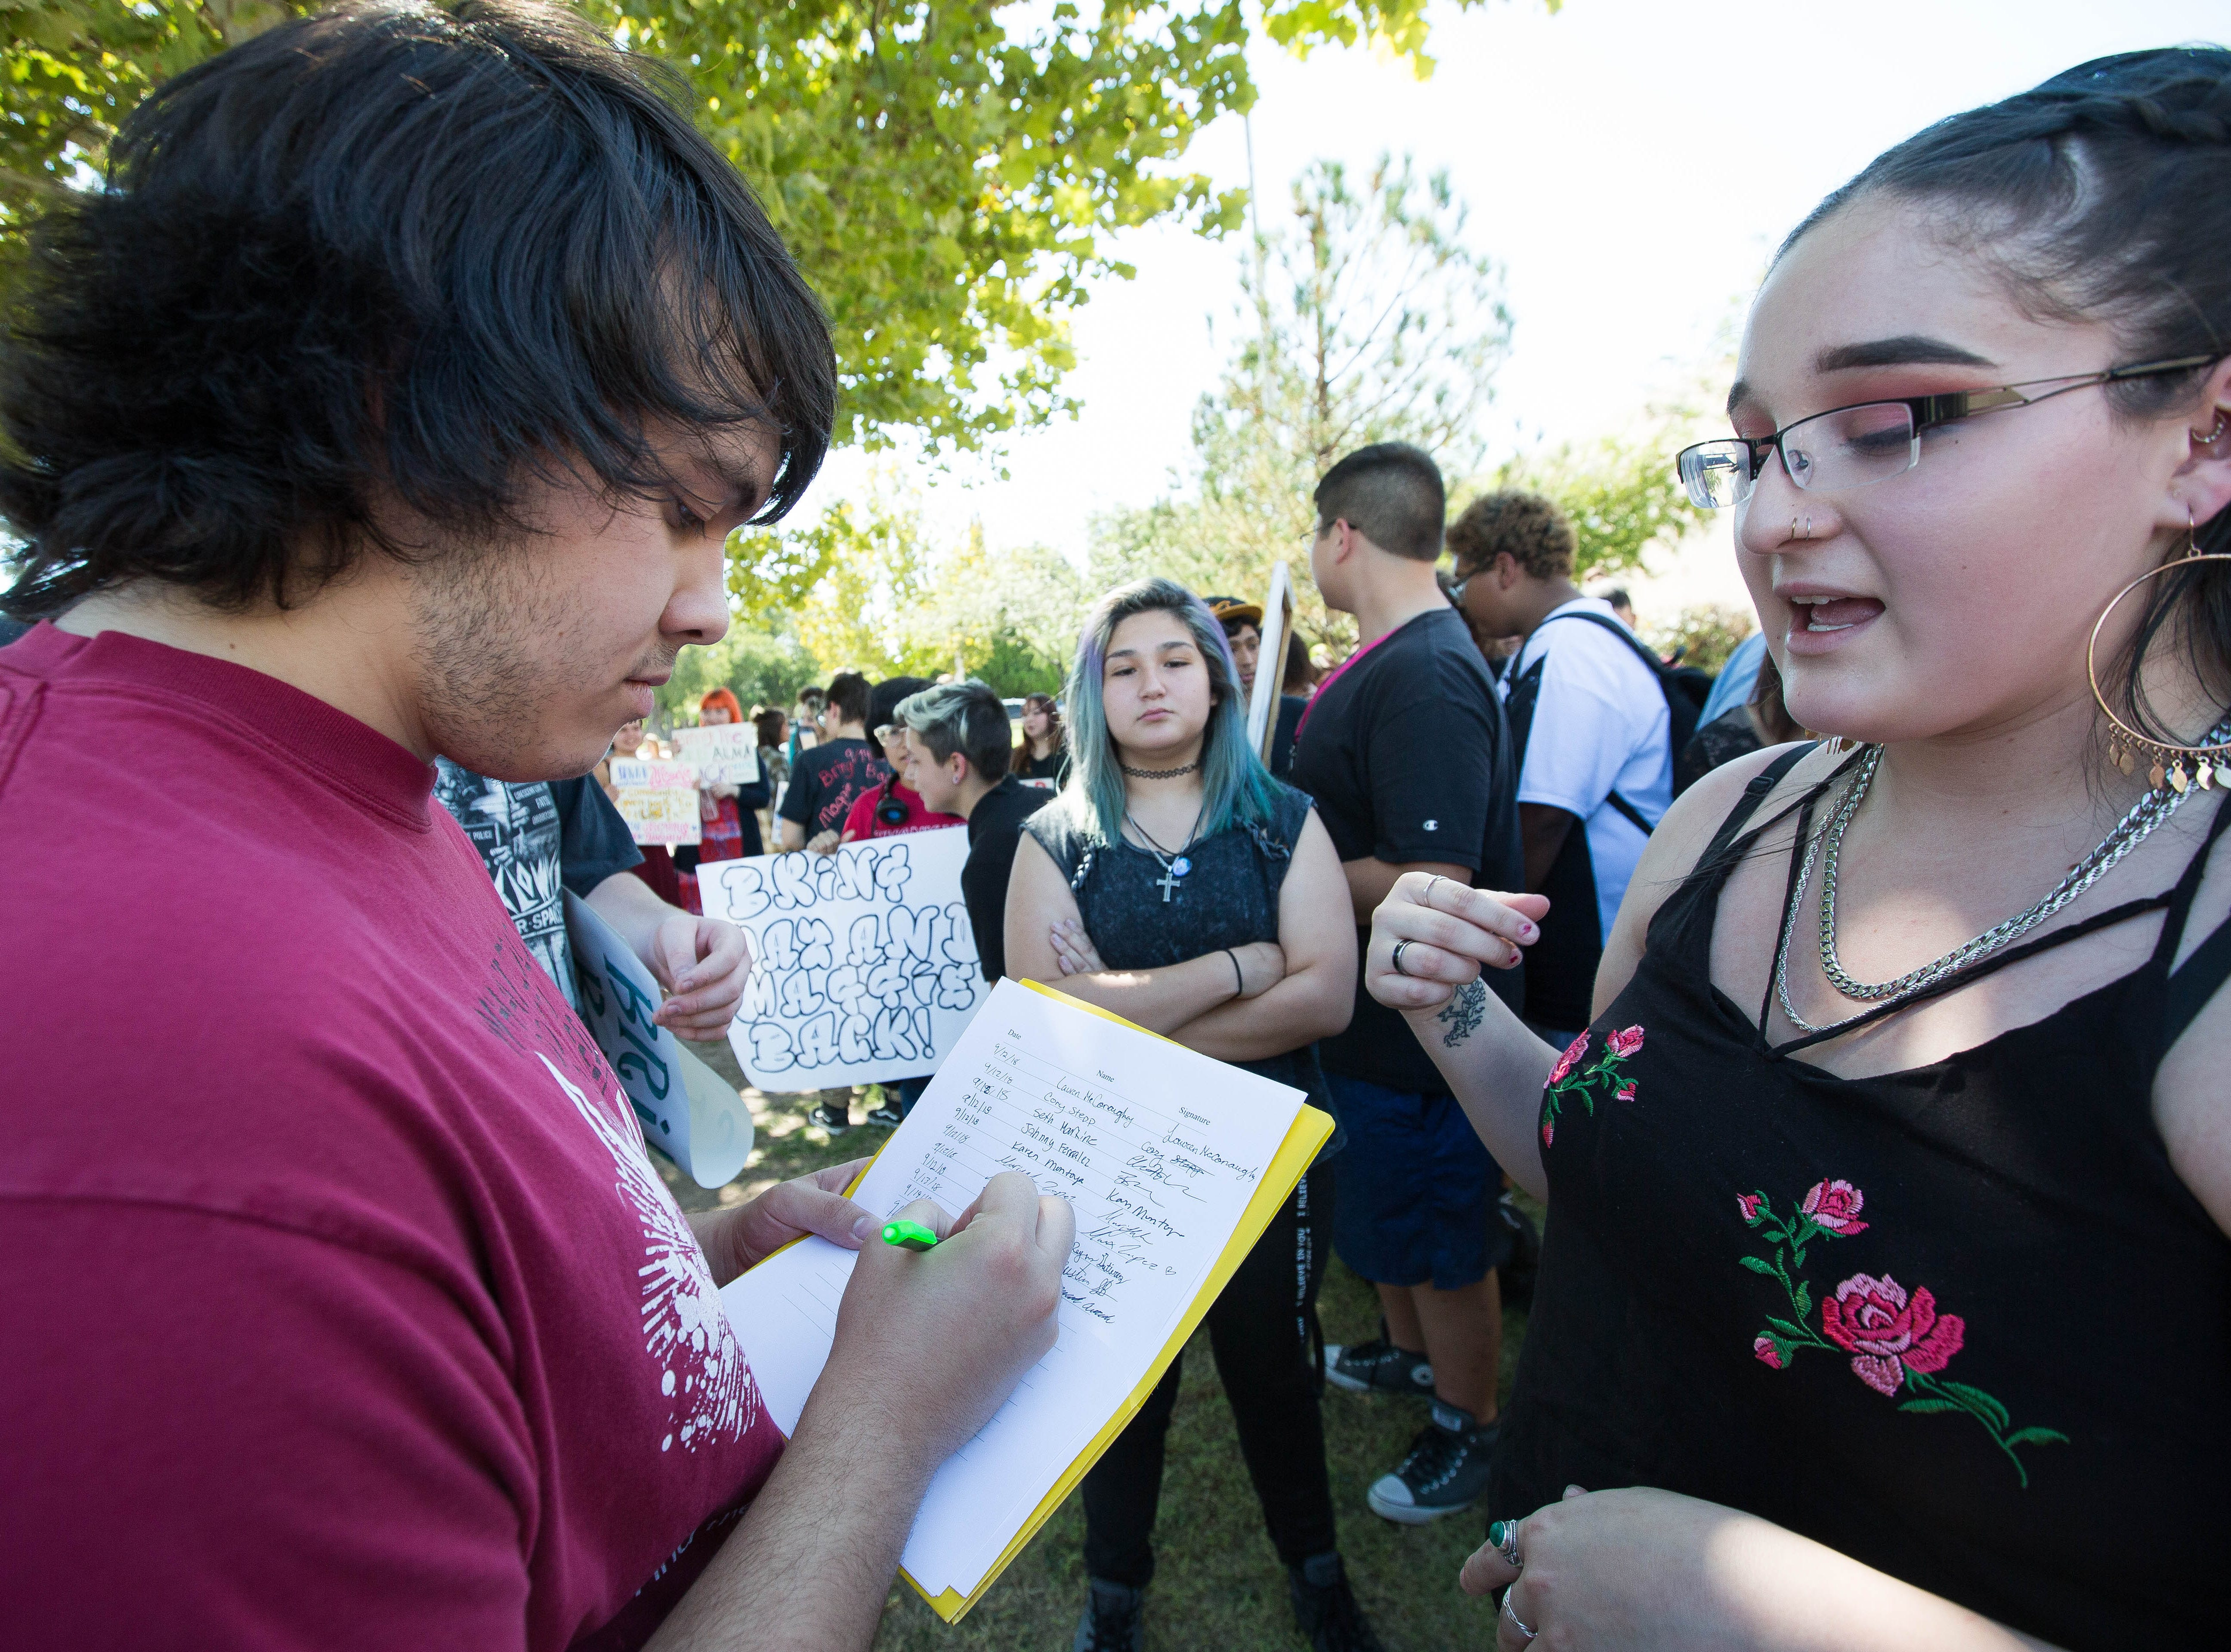 Haley Gillis, 16, right, collects a signature from Eric Lopez, 17 on a petitionduring a student lead  protest at Alma d'Arte over the termination of two  staff, a teacher and a special education coordinator, along  with some student expulsions,